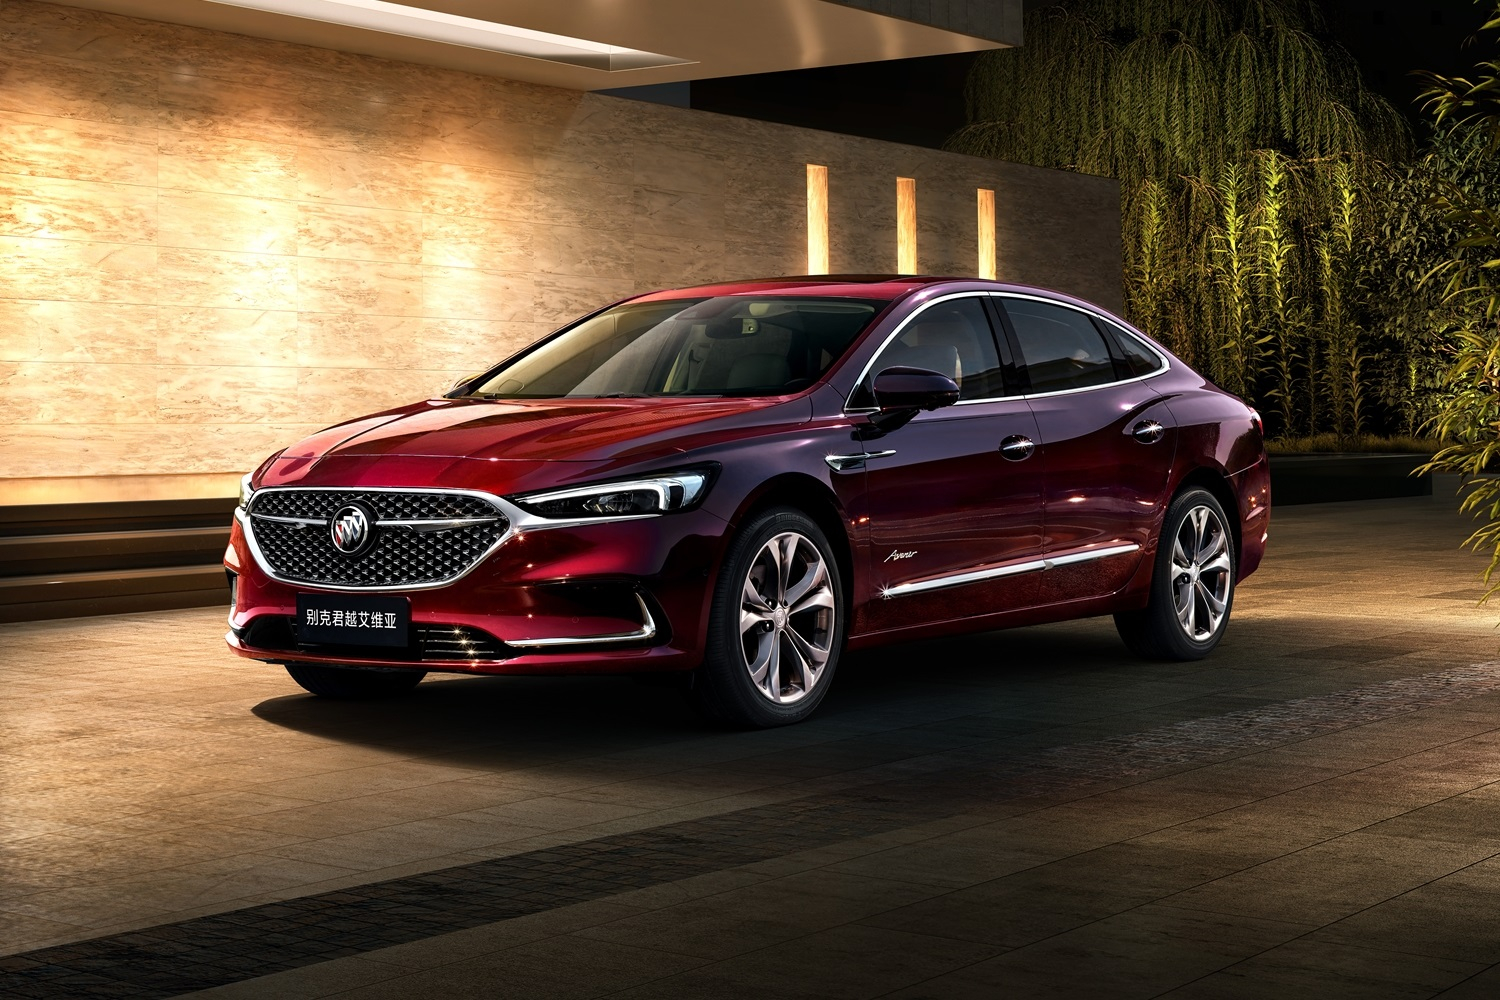 2021 Buick Lacrosse Gets More Refined Than Ever   Gm Authority New 2021 Buick Lucerne Mpg, Seat Covers, Specs